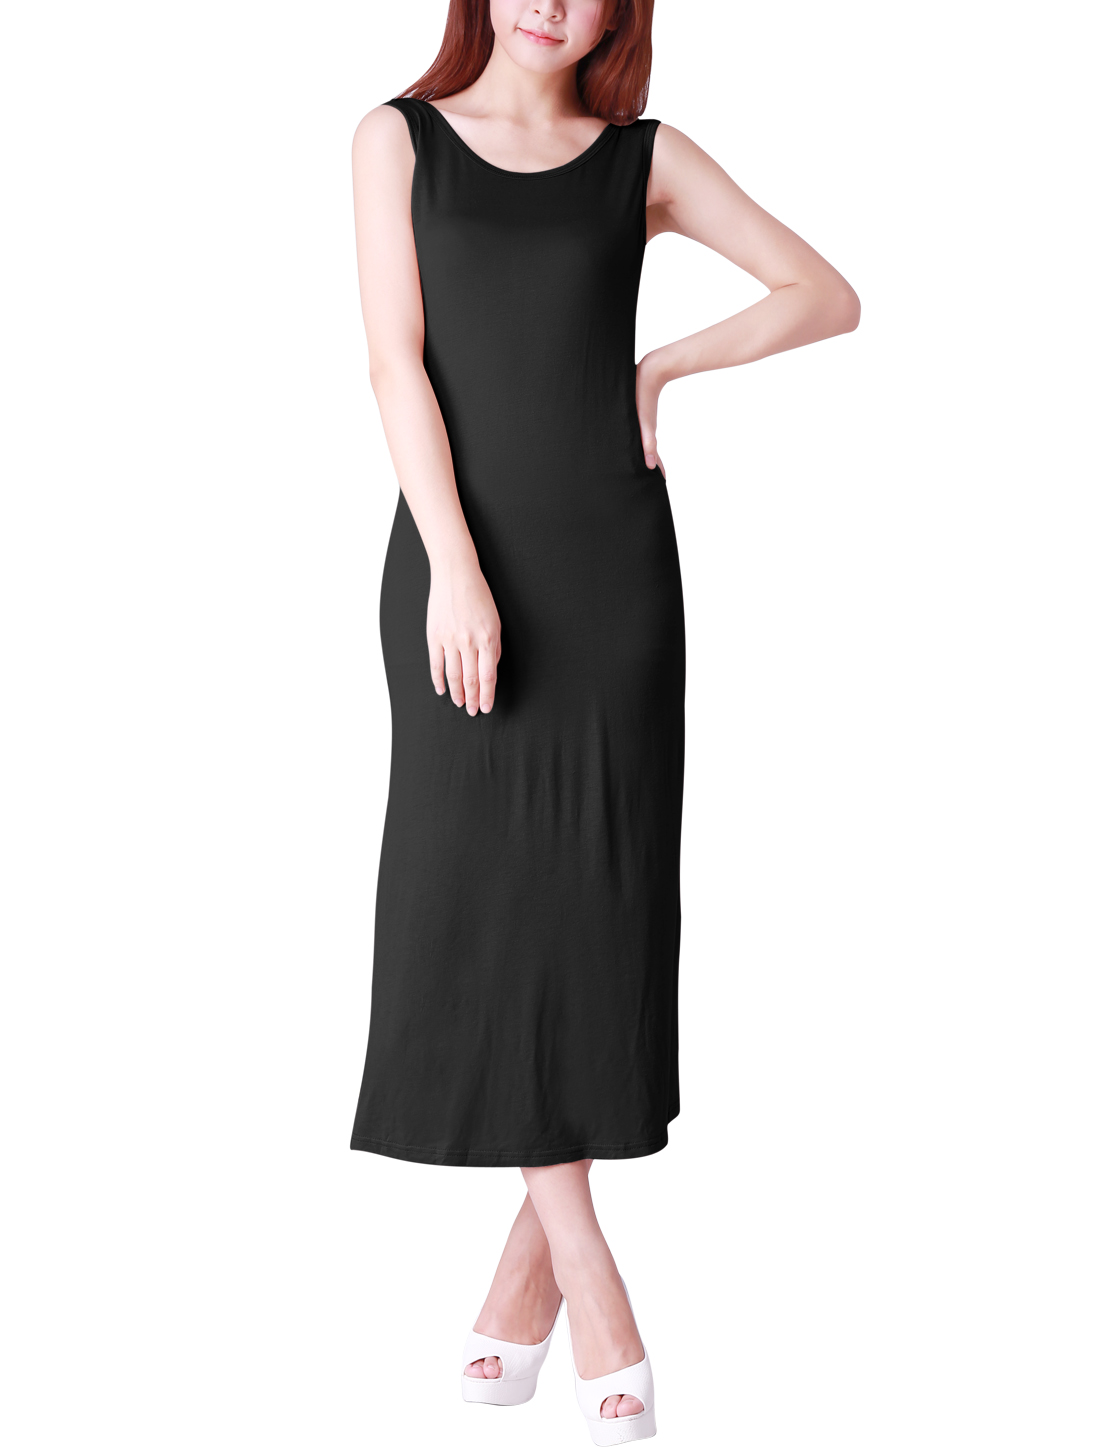 Ladies Chic U Neck Backless Design Pure Black Maxi Dress S